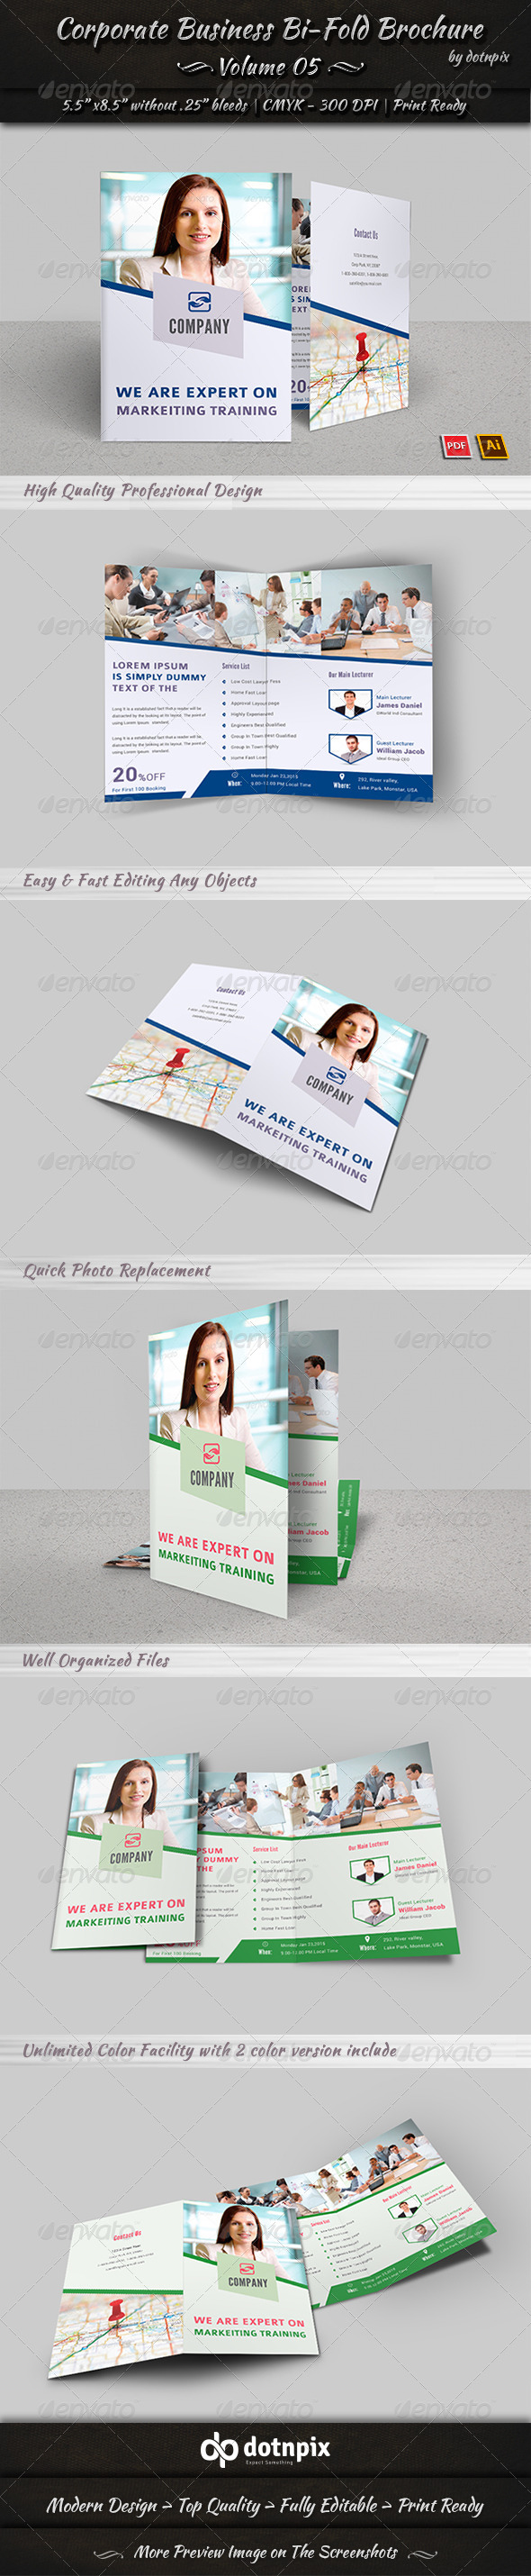 GraphicRiver Corporate Business Bi-Fold Brochure Volume 5 8023502